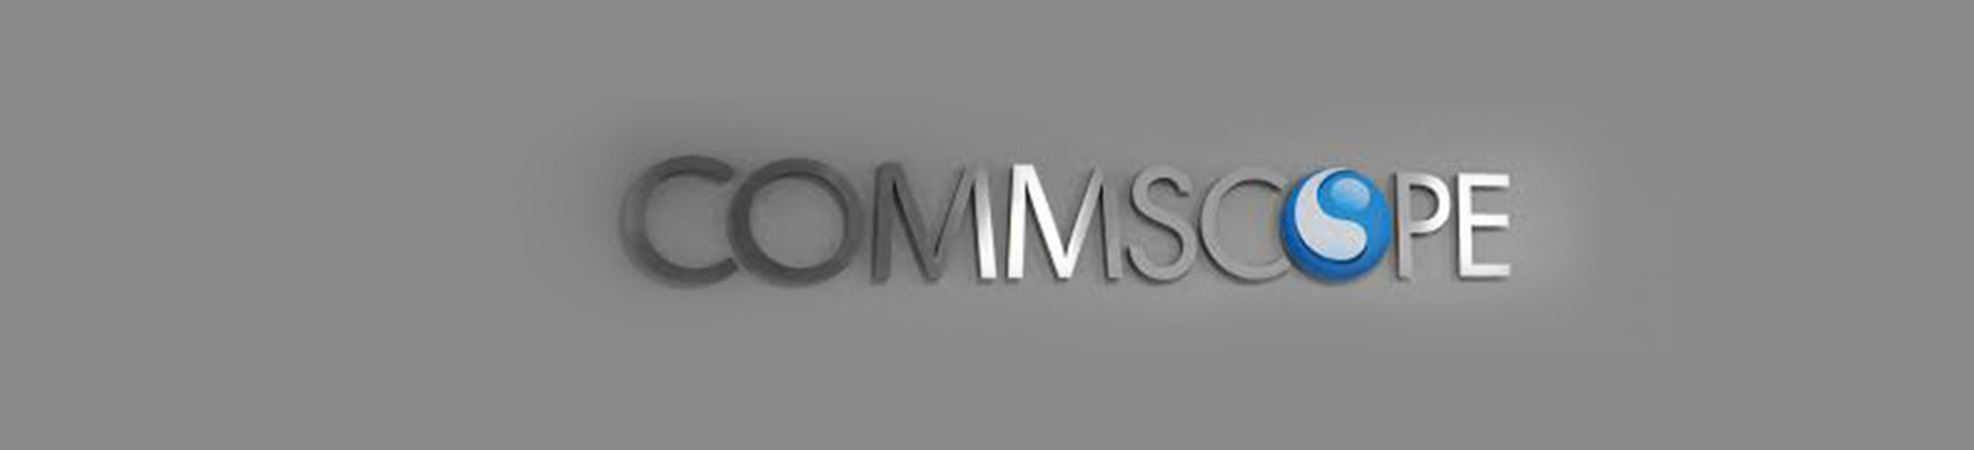 Commscope-banner